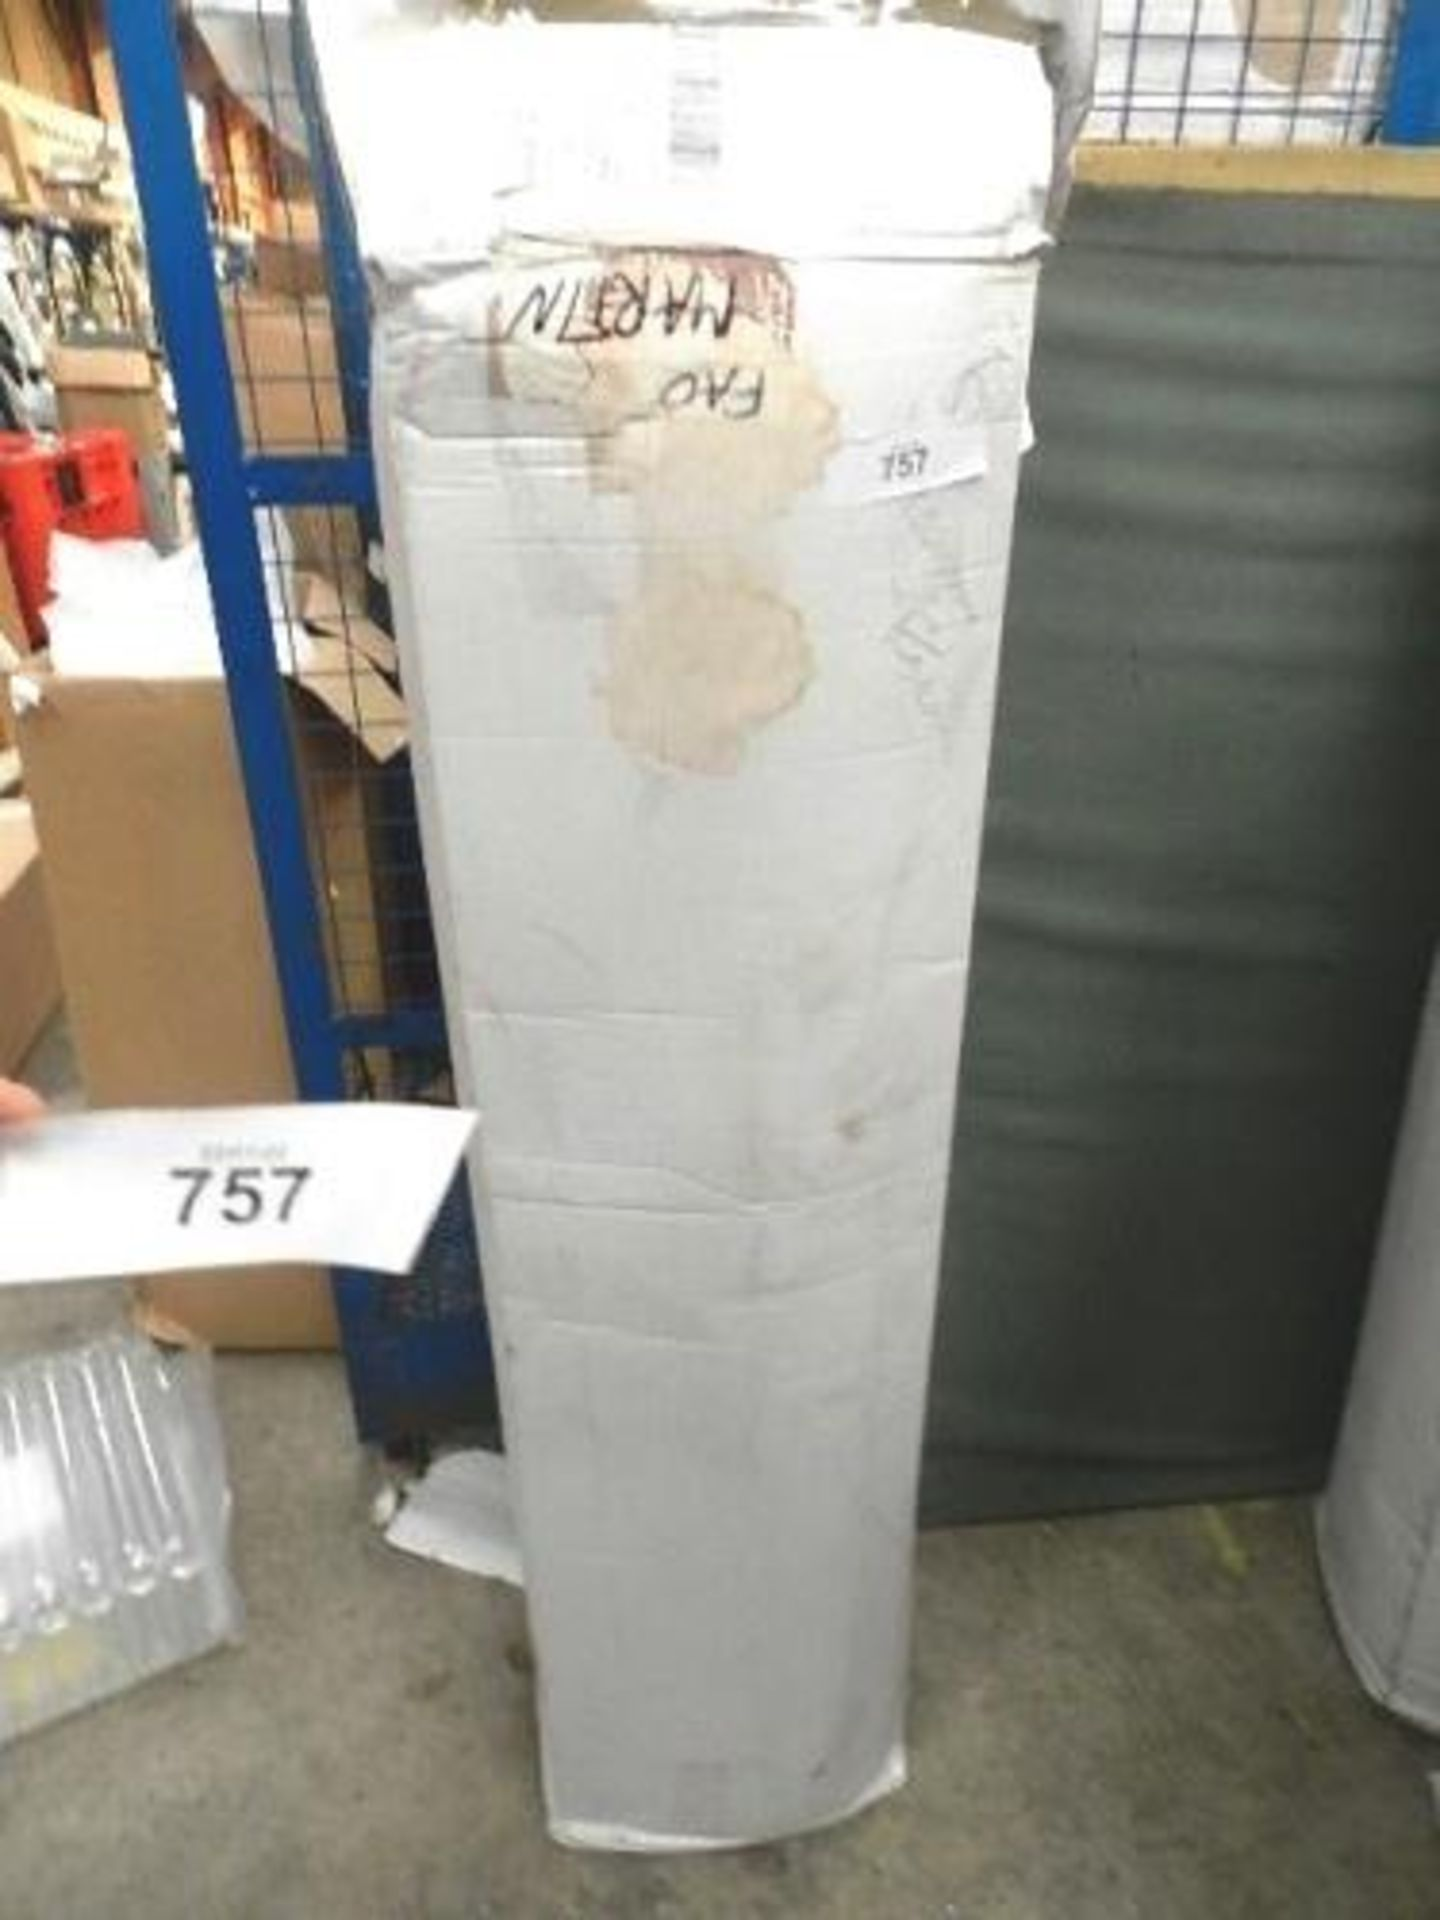 Lot 757 - 1 x double Bubble memory foam mattress, 4.6ft wide x 6.5 - Sealed new in box (GSF31)